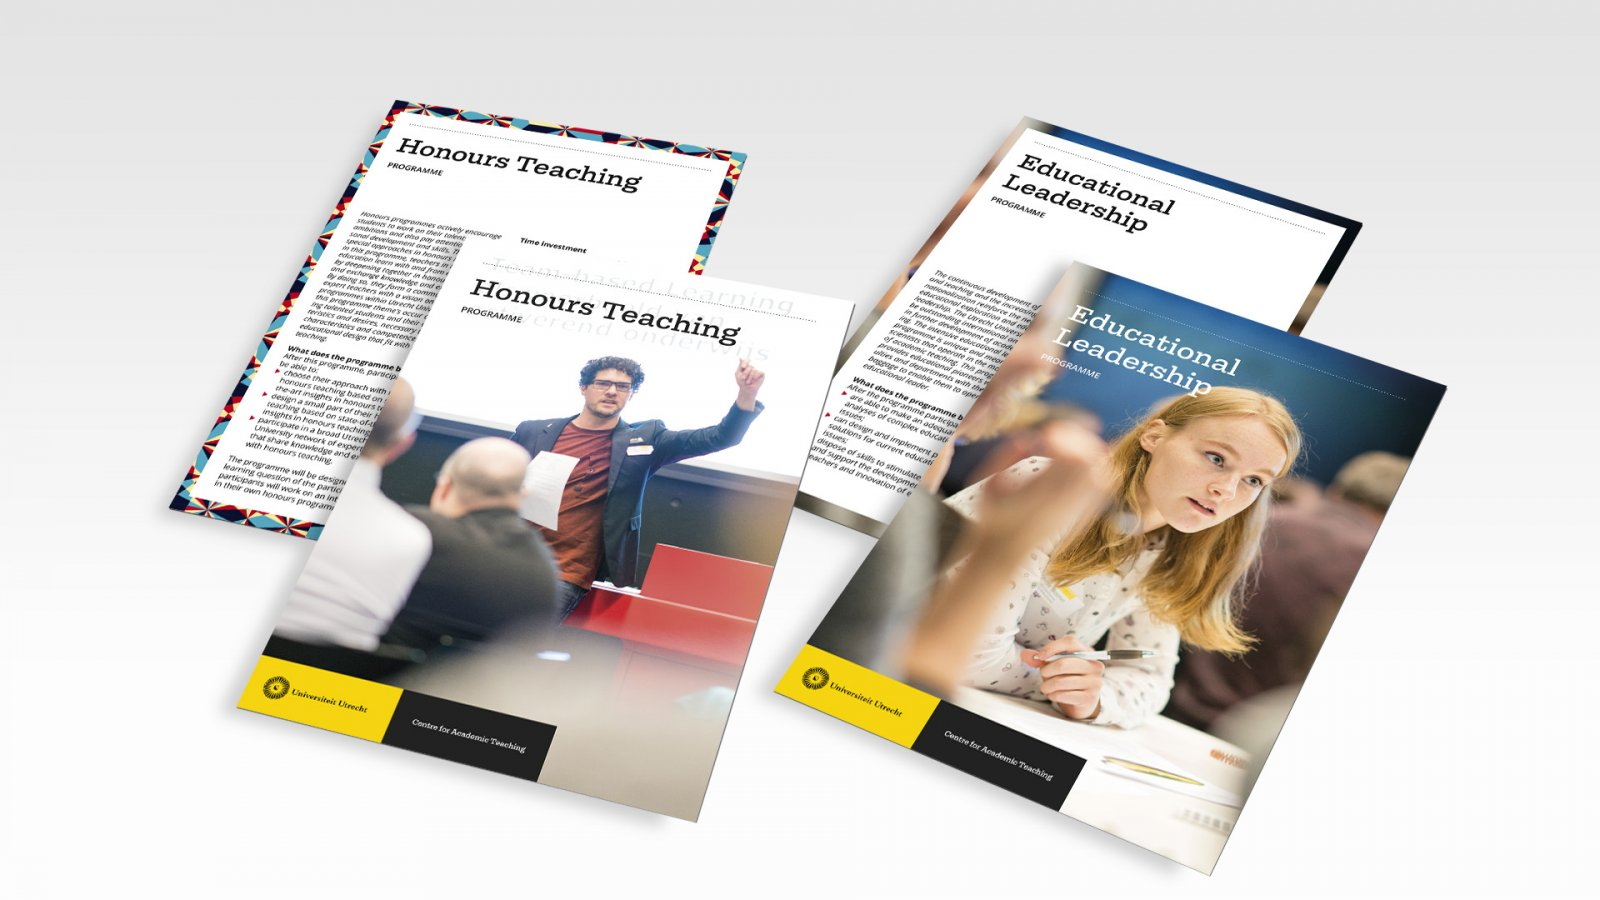 Centre for Academic Teaching flyers